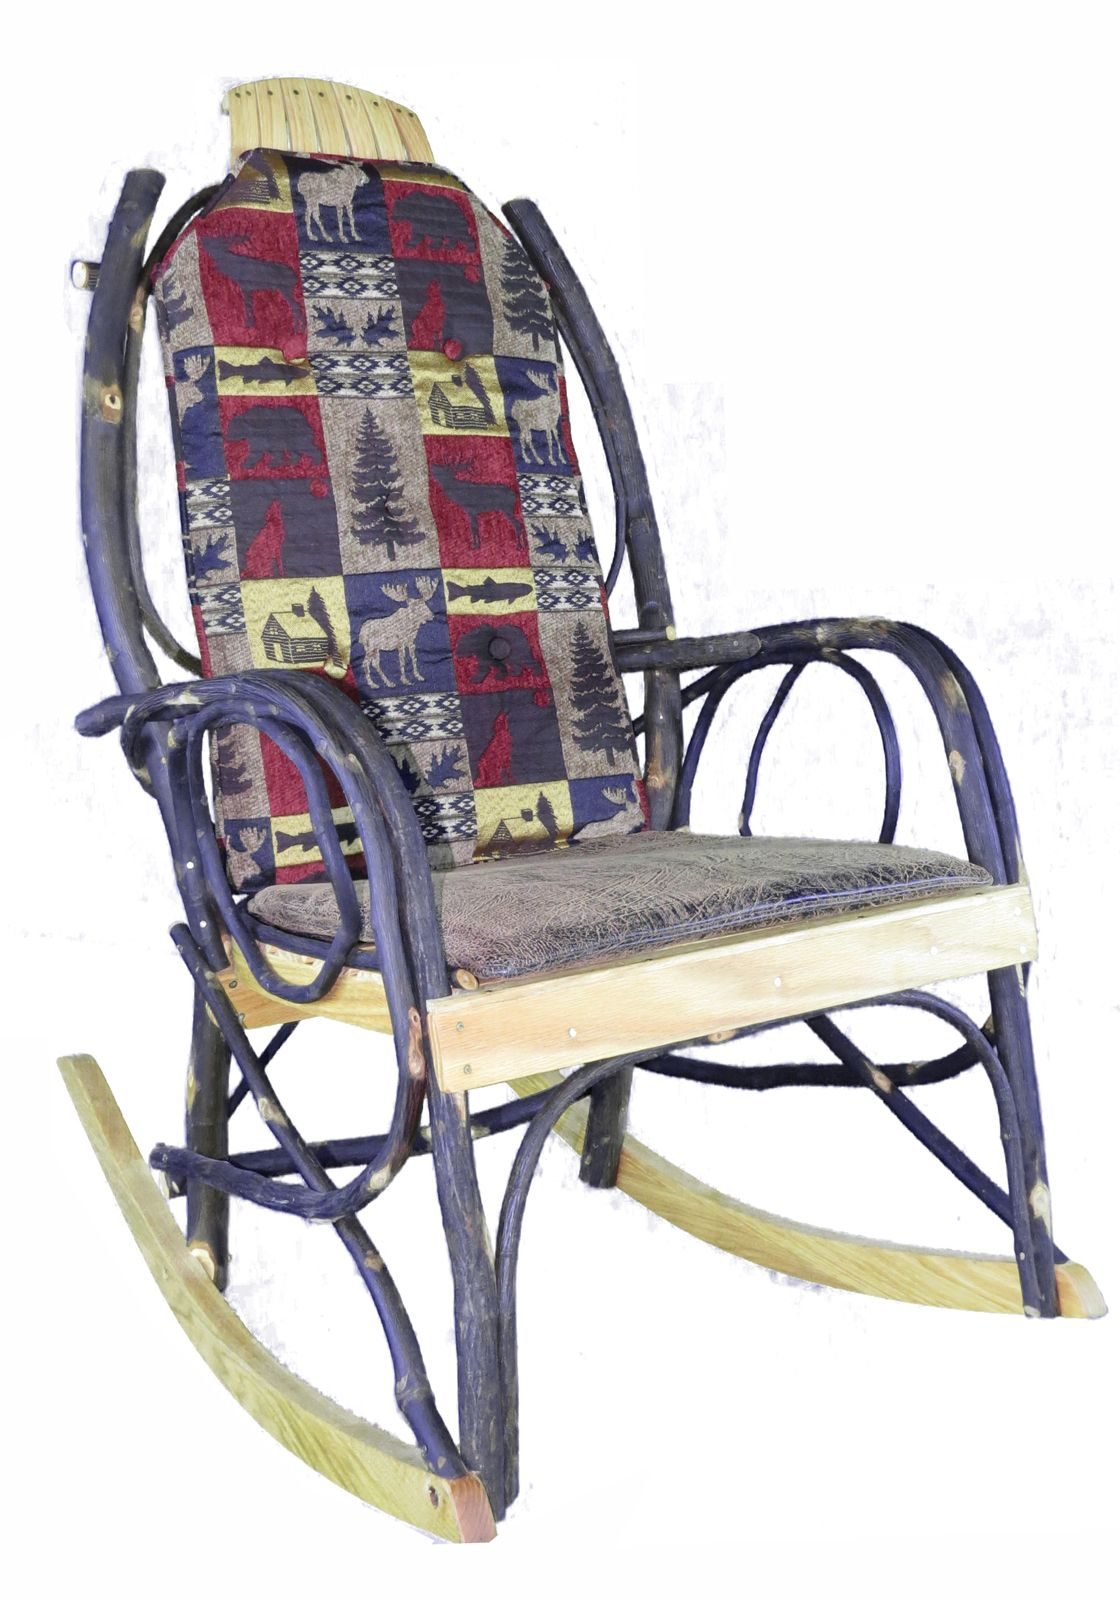 Amish Rocking Chair Cushion Set   The Cabin Collection Fabric